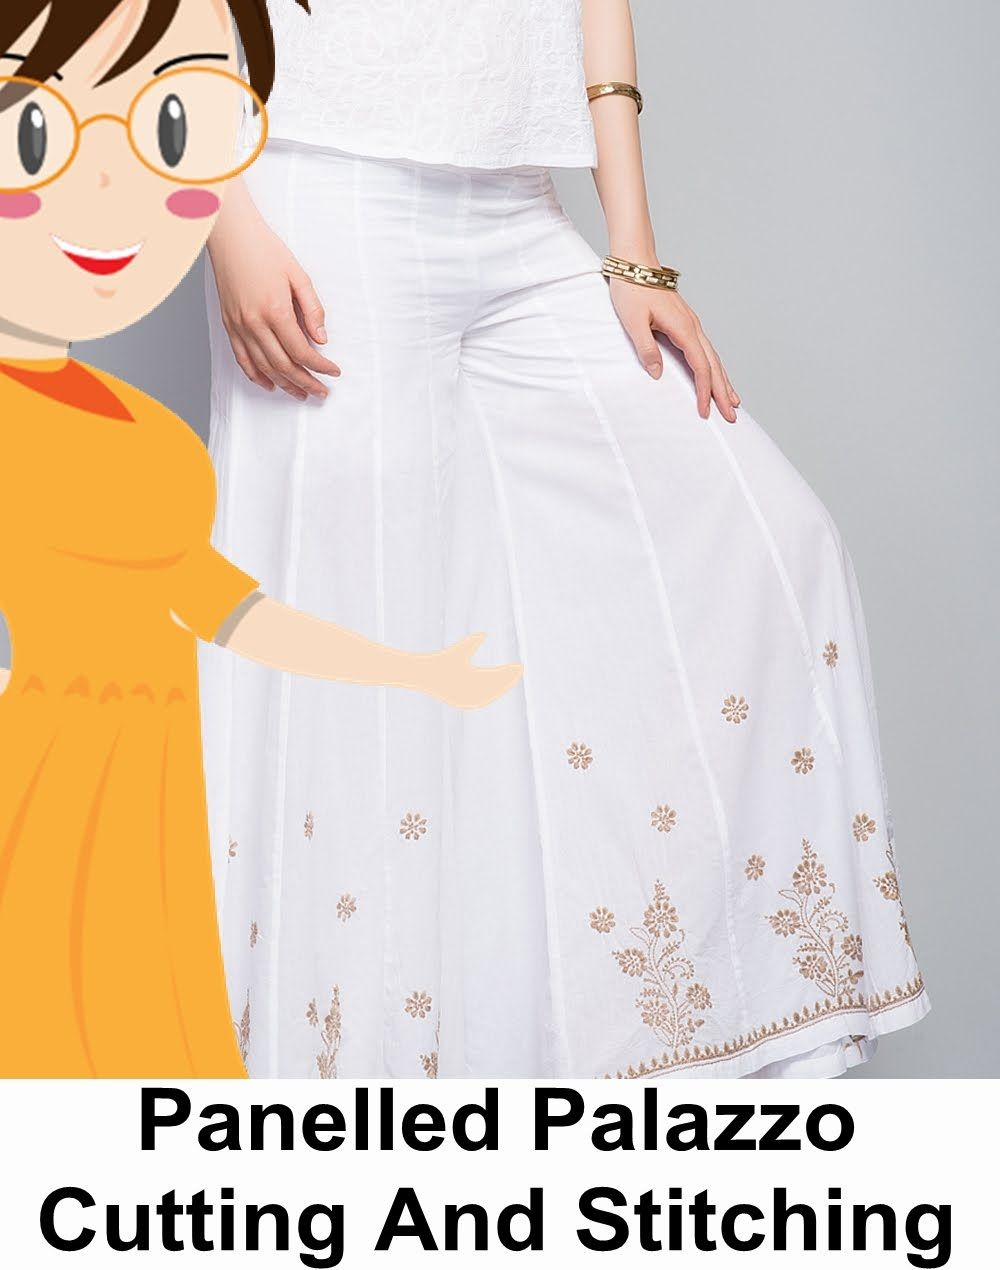 Panelled Palazzo Cutting And Stitching | DIY - Tailoring With Usha ...